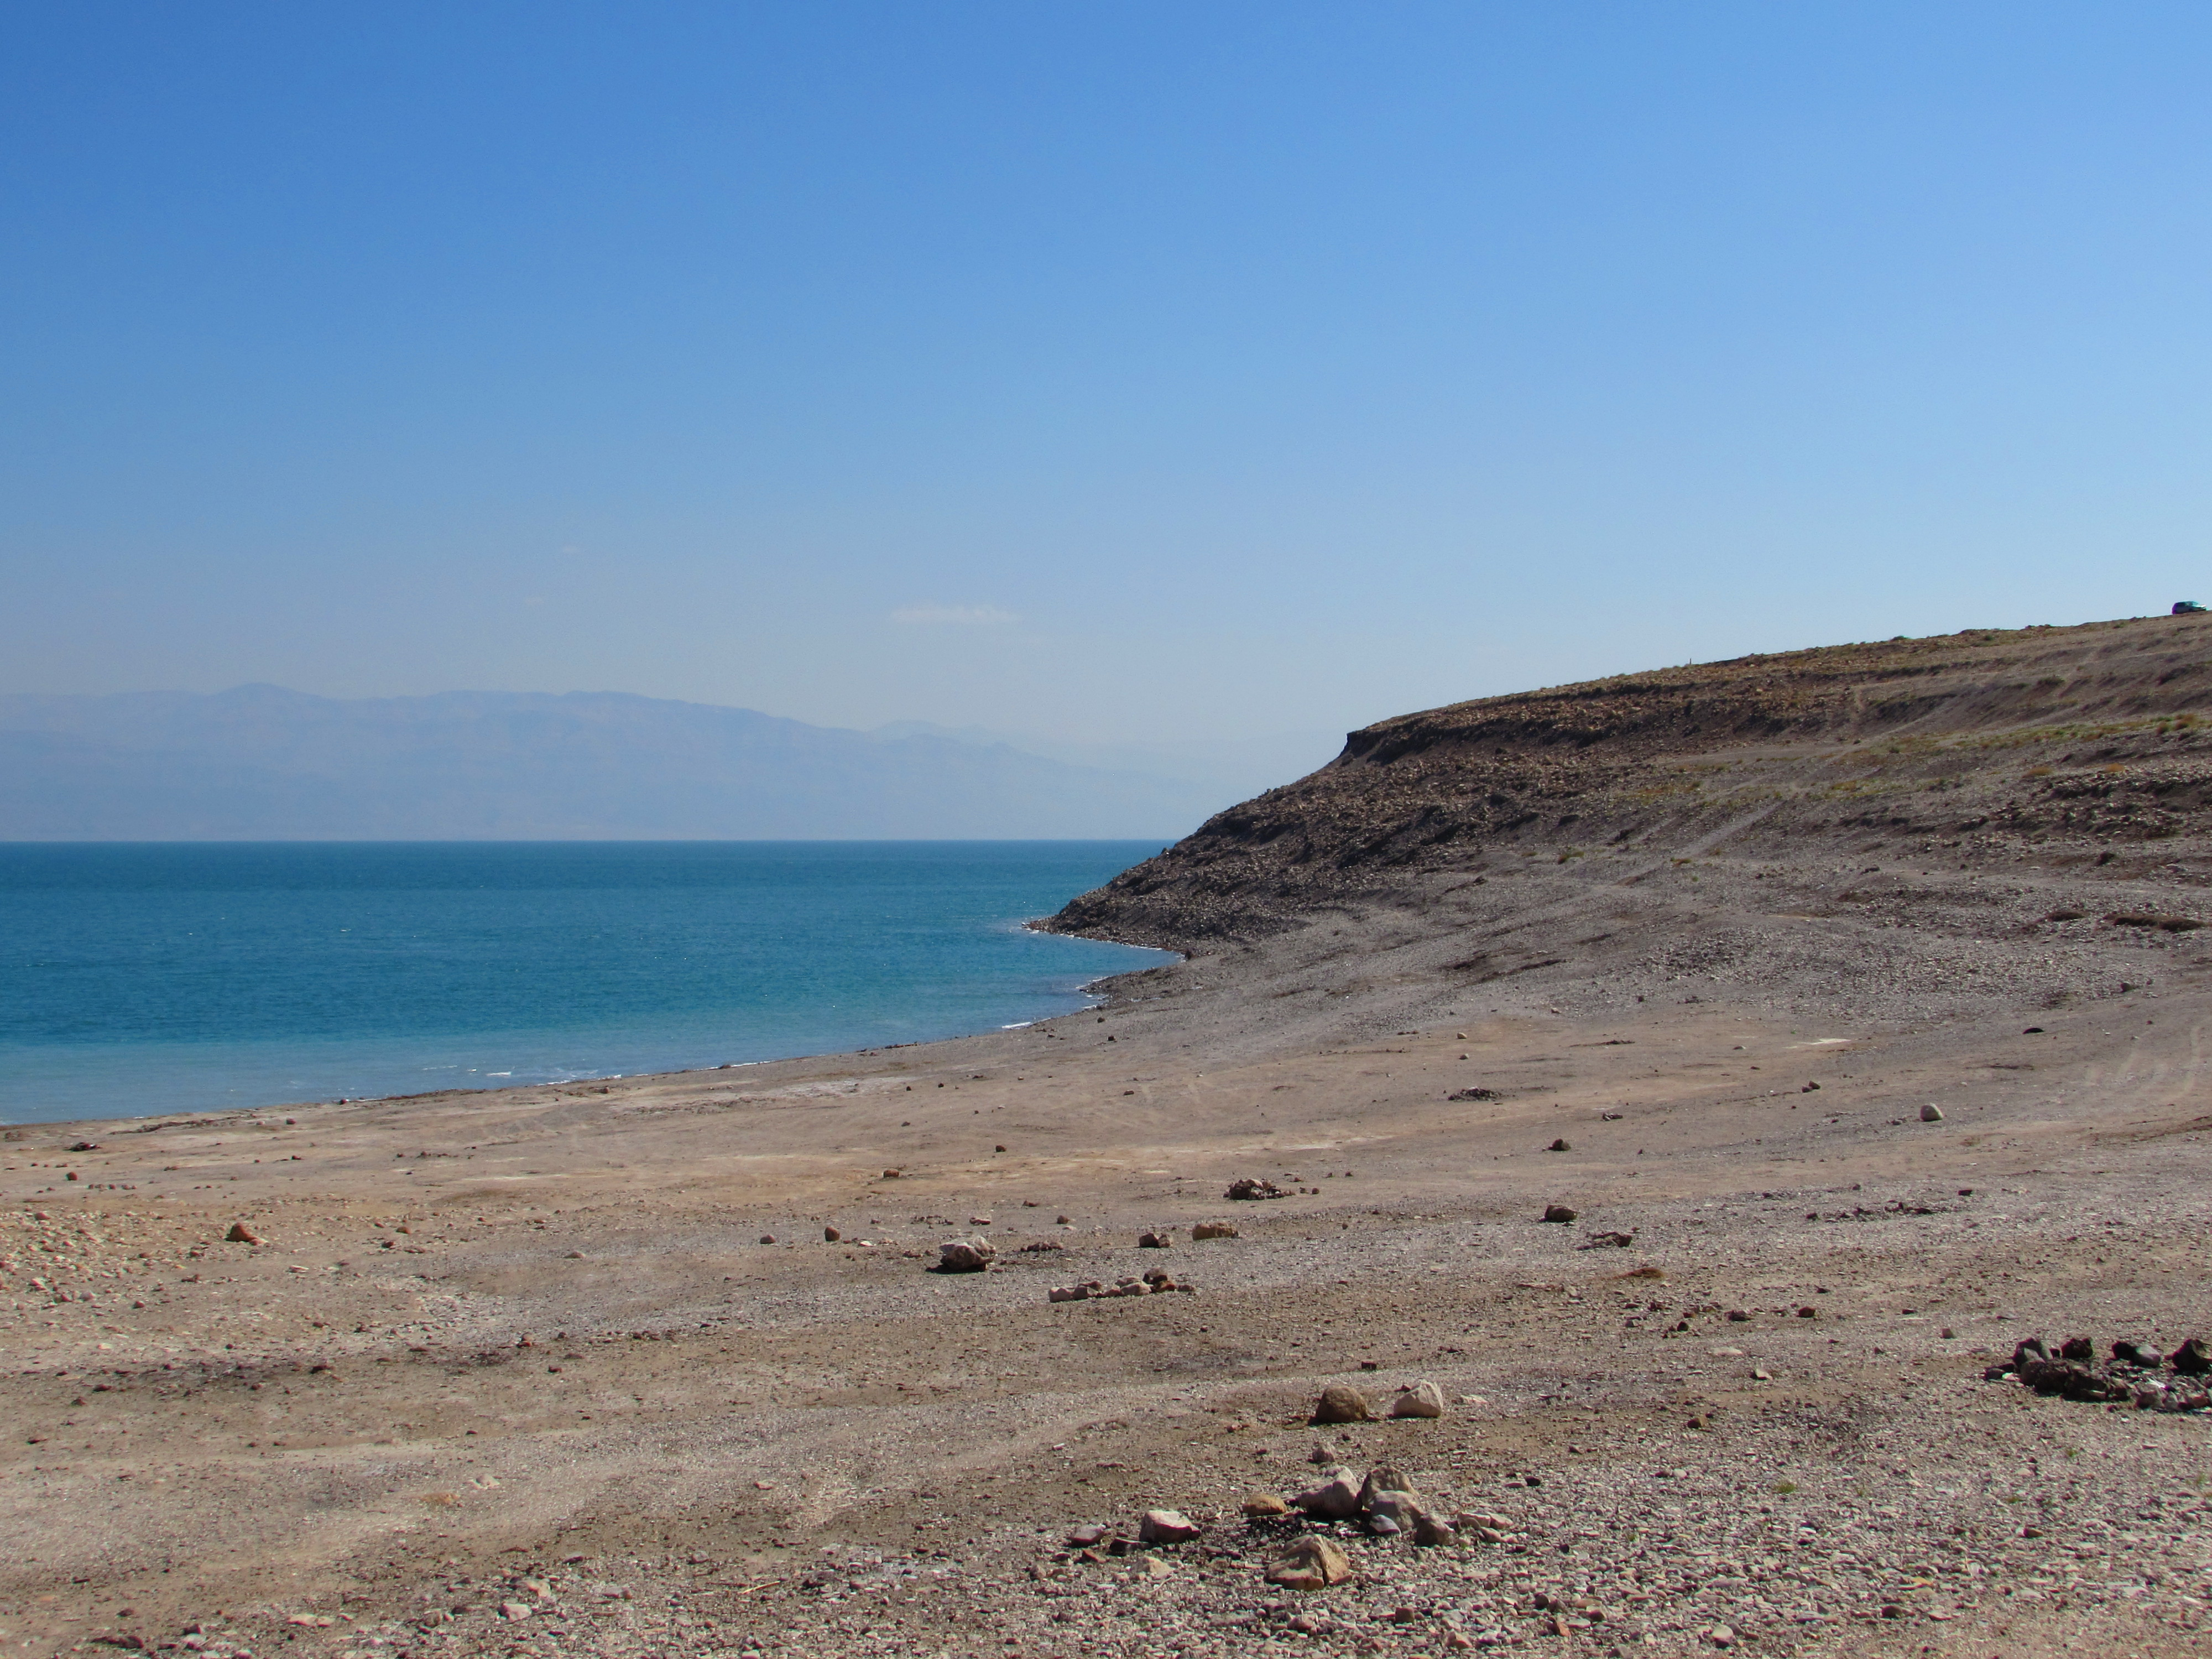 Where my friend Asaf and I camped beside the Dead Sea